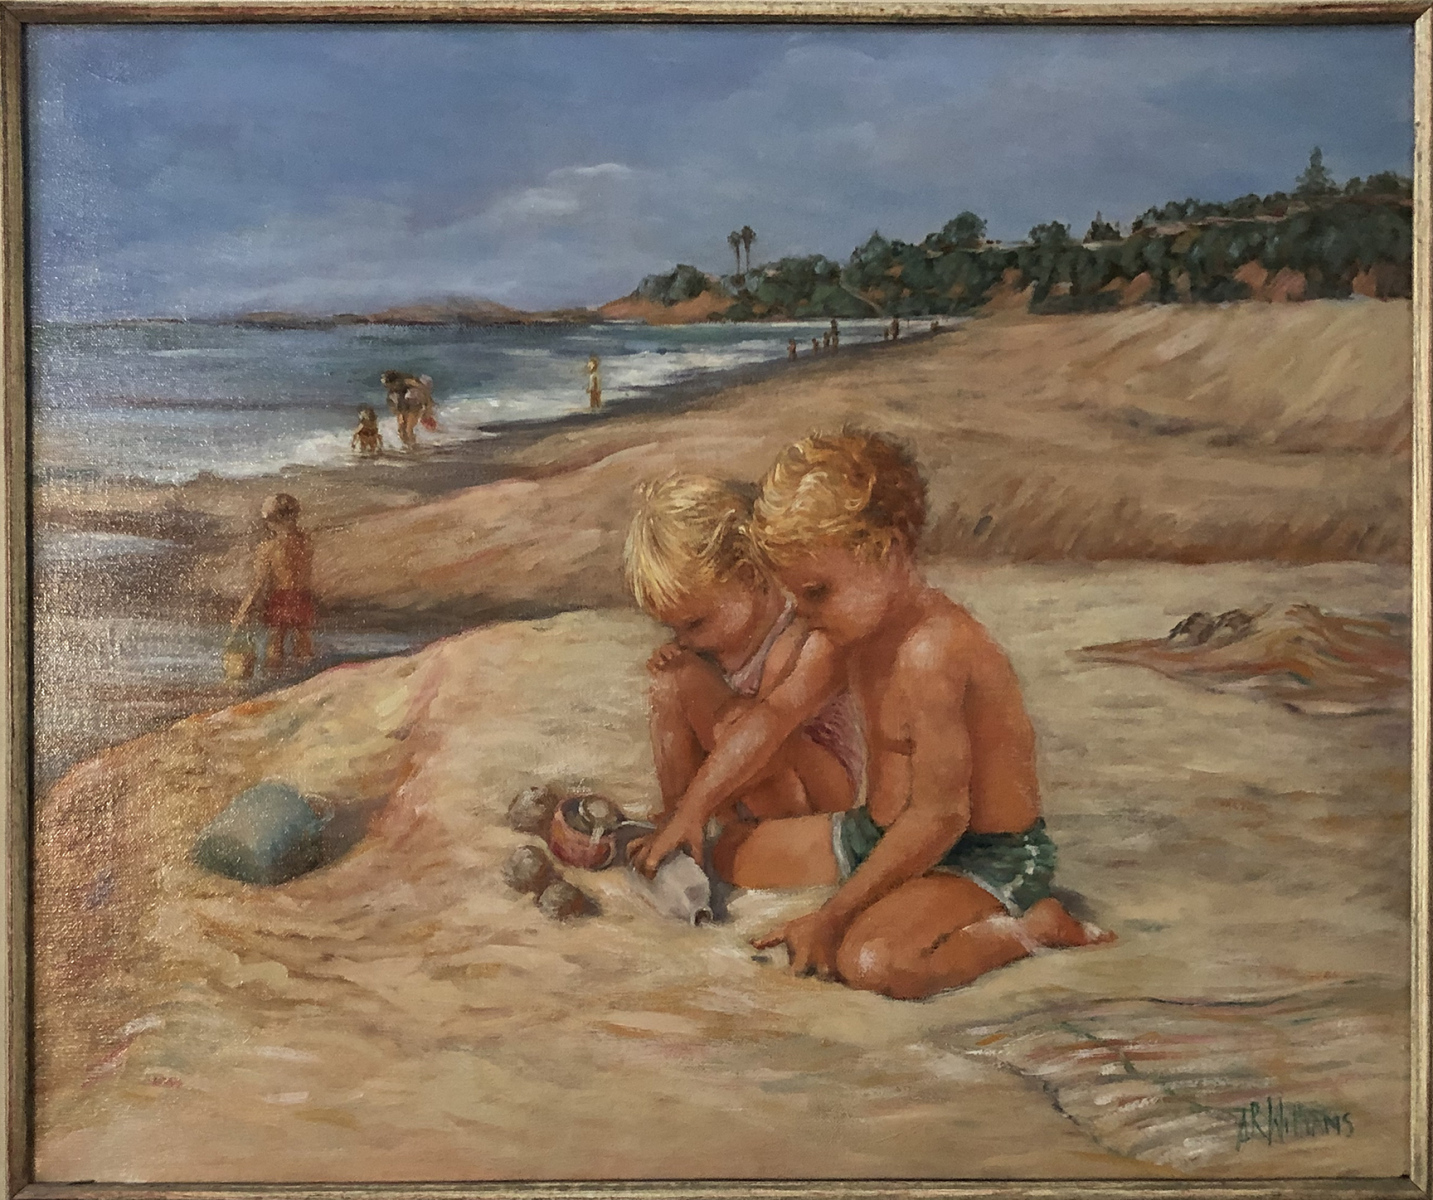 1992 Jessica, Wes and Justin at Laguna Beach 24x20 oil on canvas